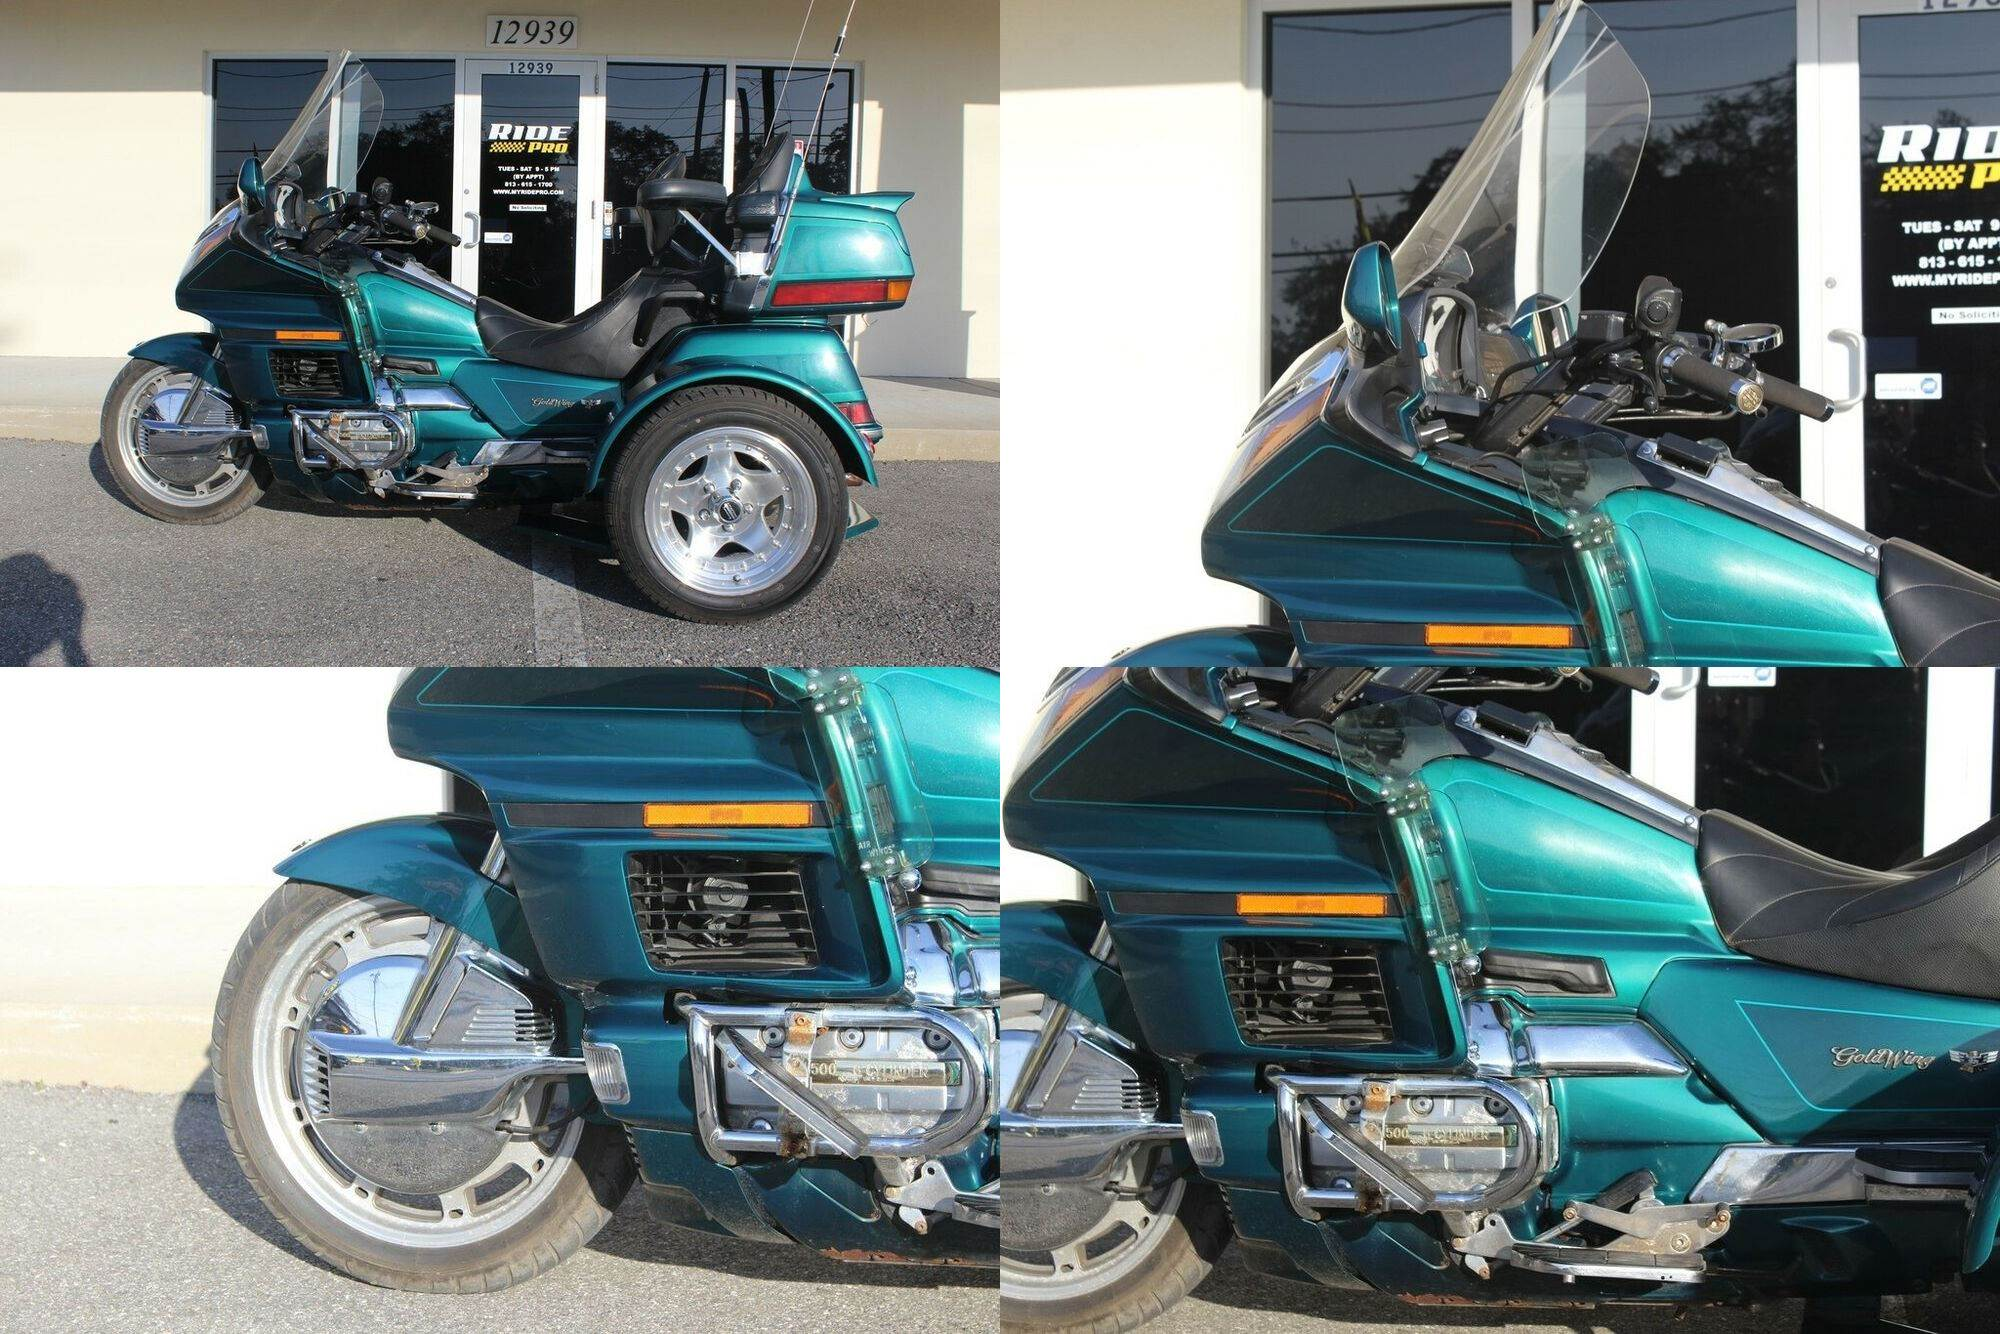 1996 Honda Gold Wing Green used for sale